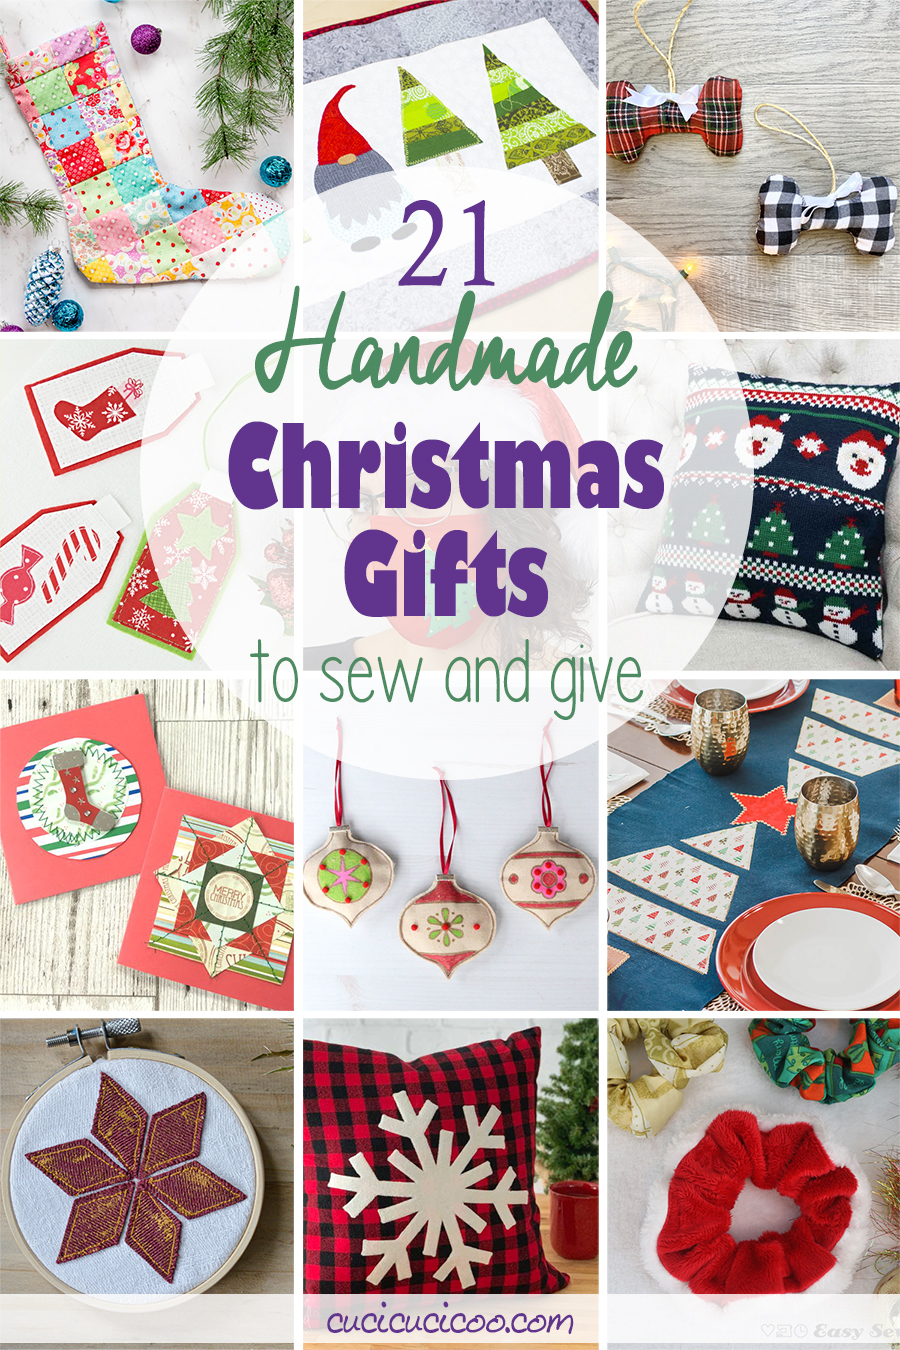 See the best 21 handmade Christmas gifts to sew and give in 2020! Family and friends will love these festive DIY gifts and you'll love sewing them! #diychristmasgifts #christmassewing #handmadechristmas